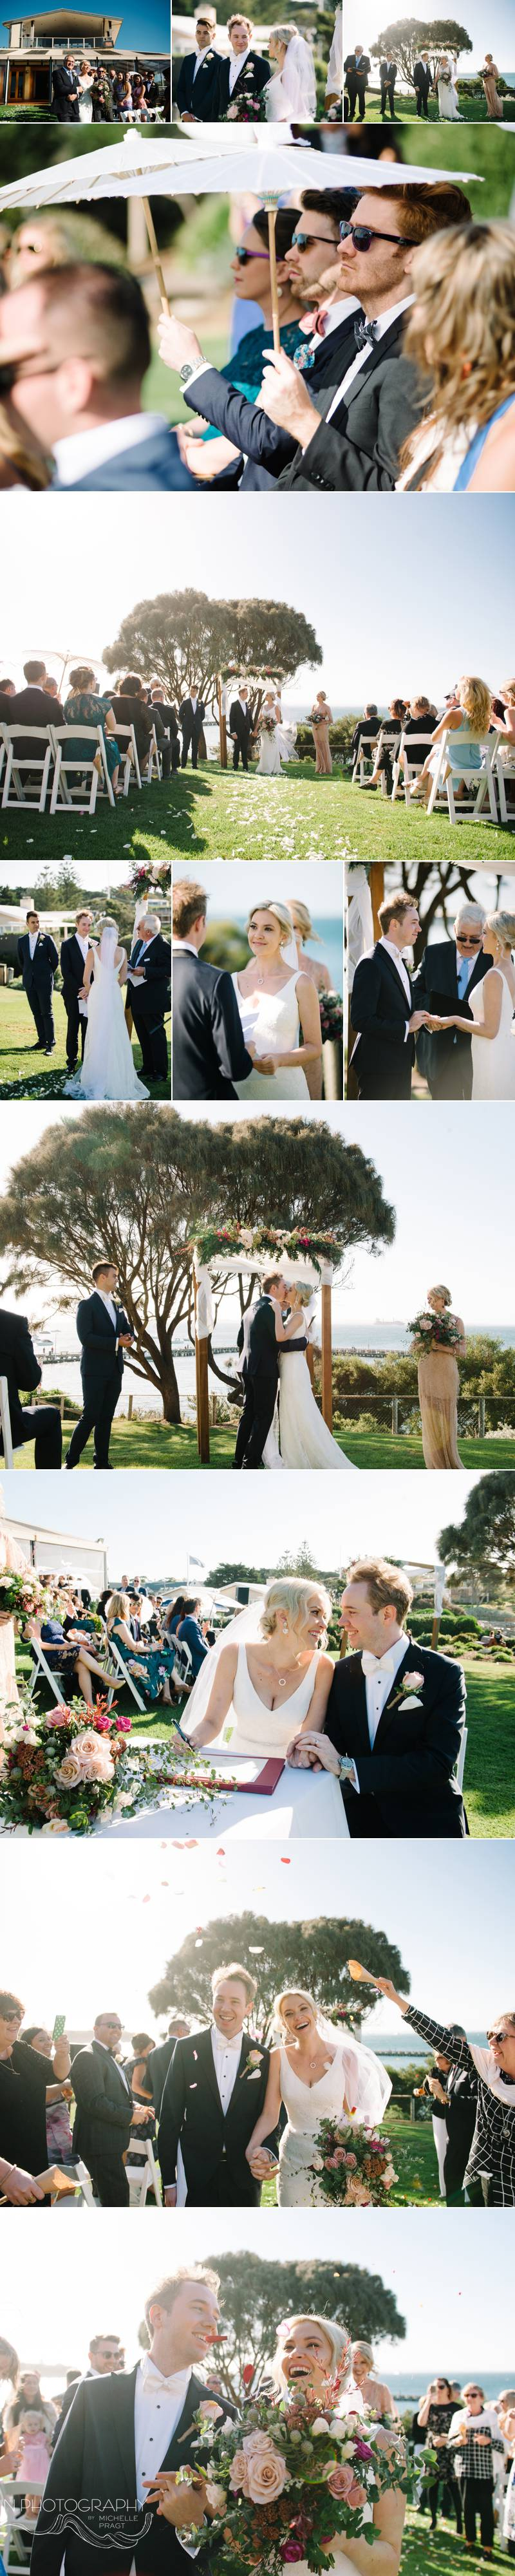 wedding photography at Portsea Hotel